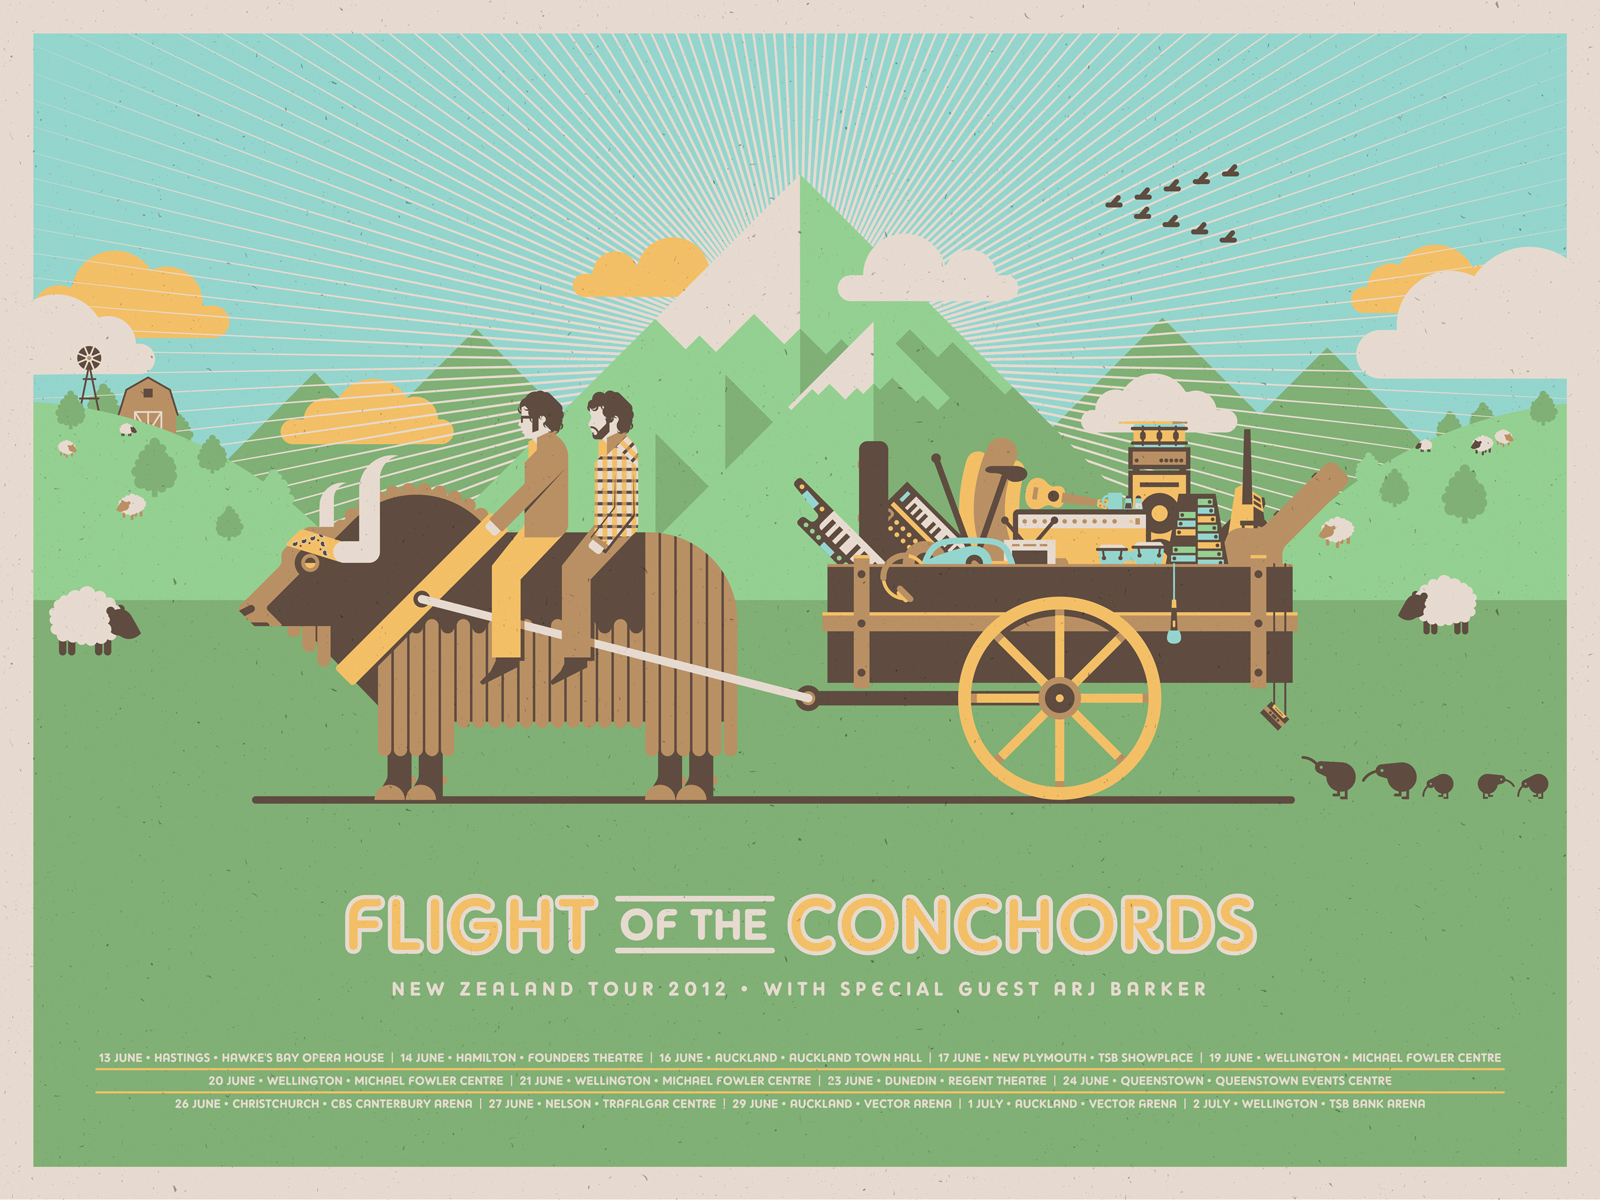 Flight of the Conchords Poster by DKNG